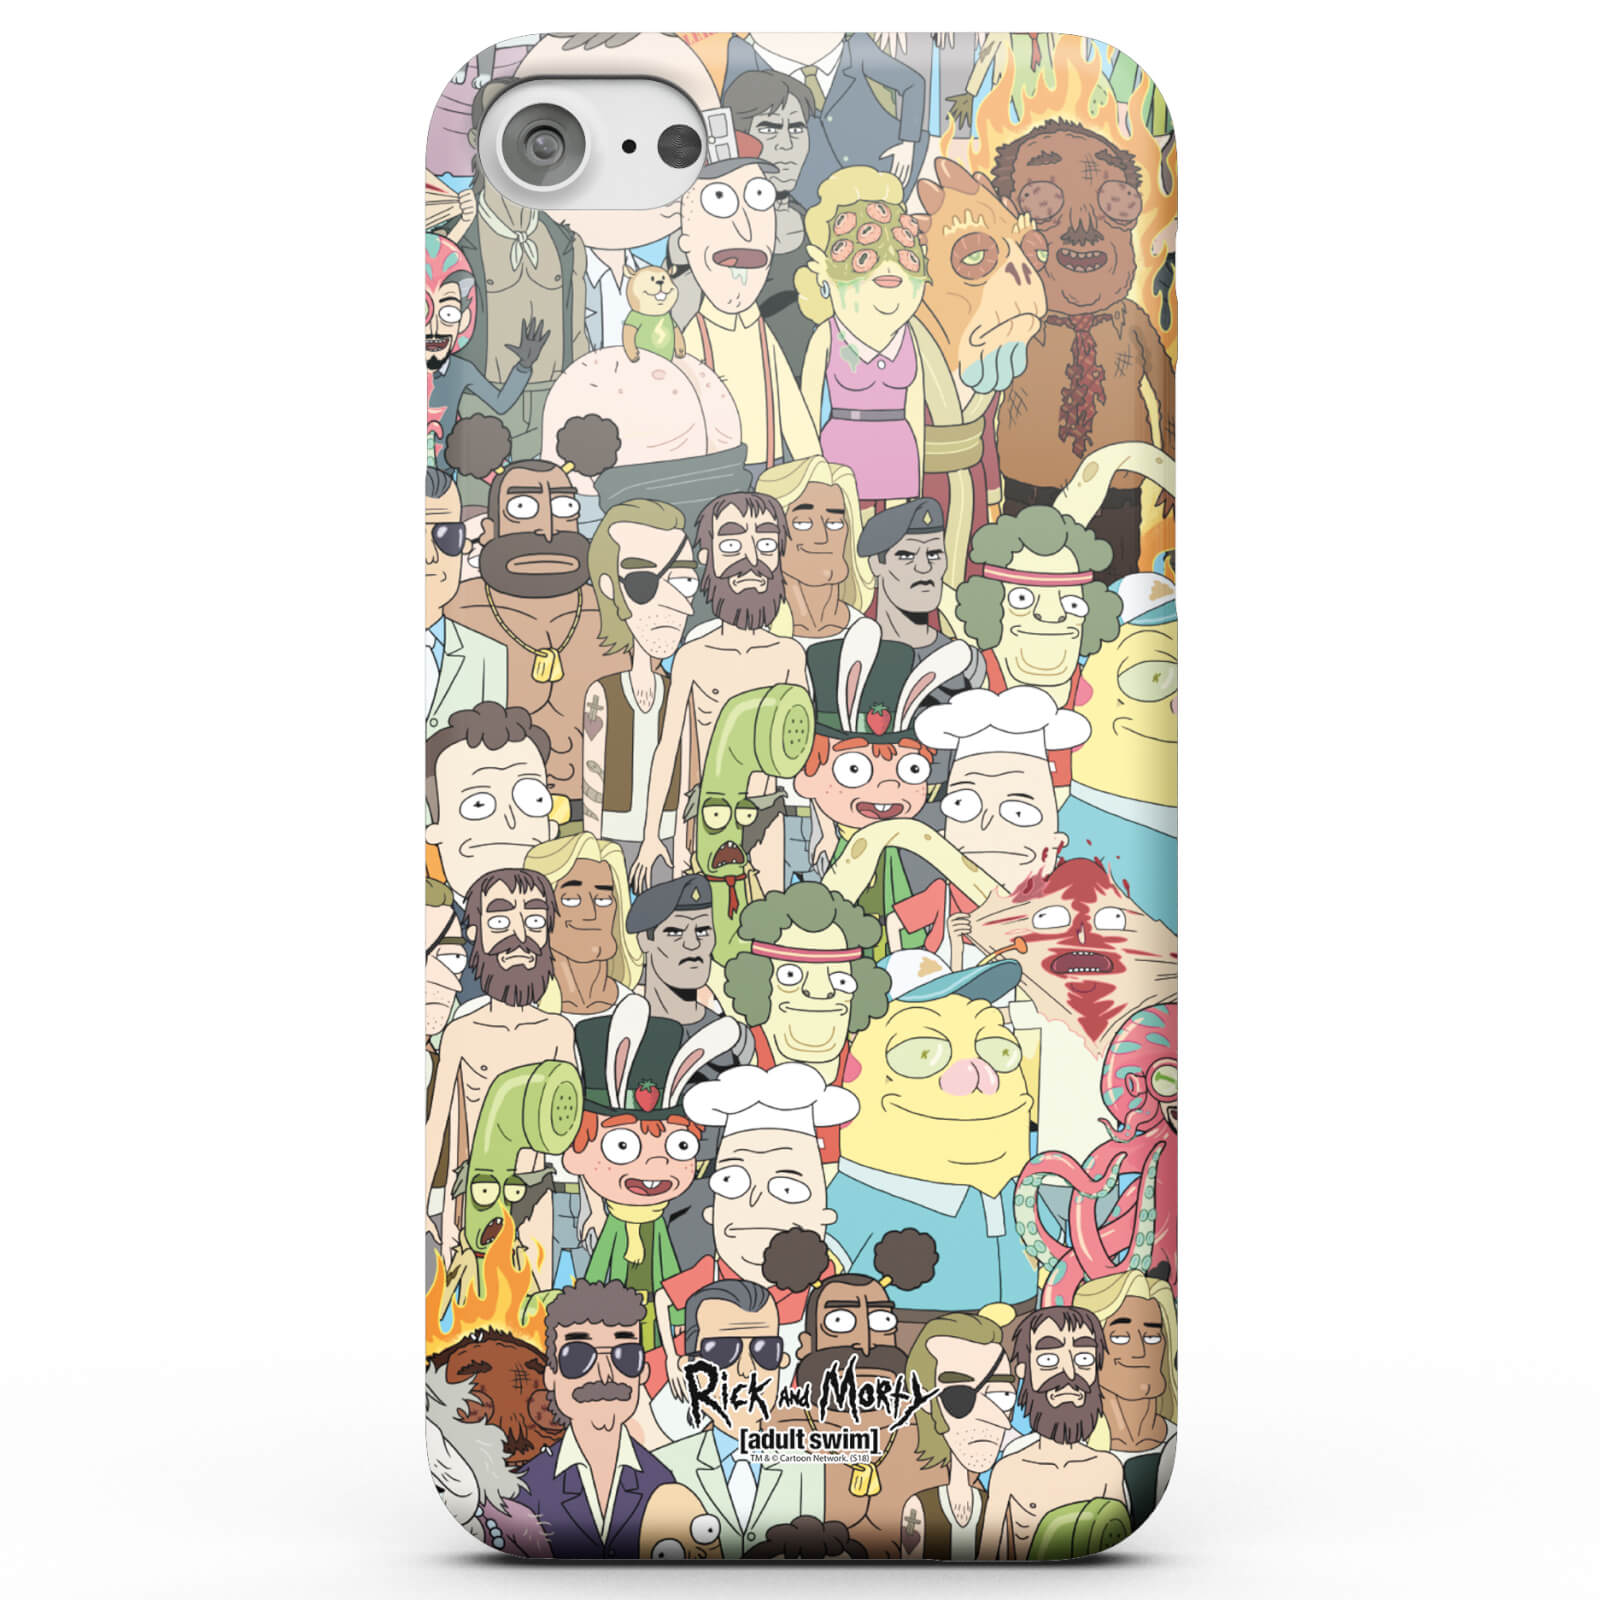 Funda Móvil Rick y Morty Interdimentional TV Characters para iPhone y Android - iPhone 6S - Carcasa doble capa - Mate de Rick and Morty